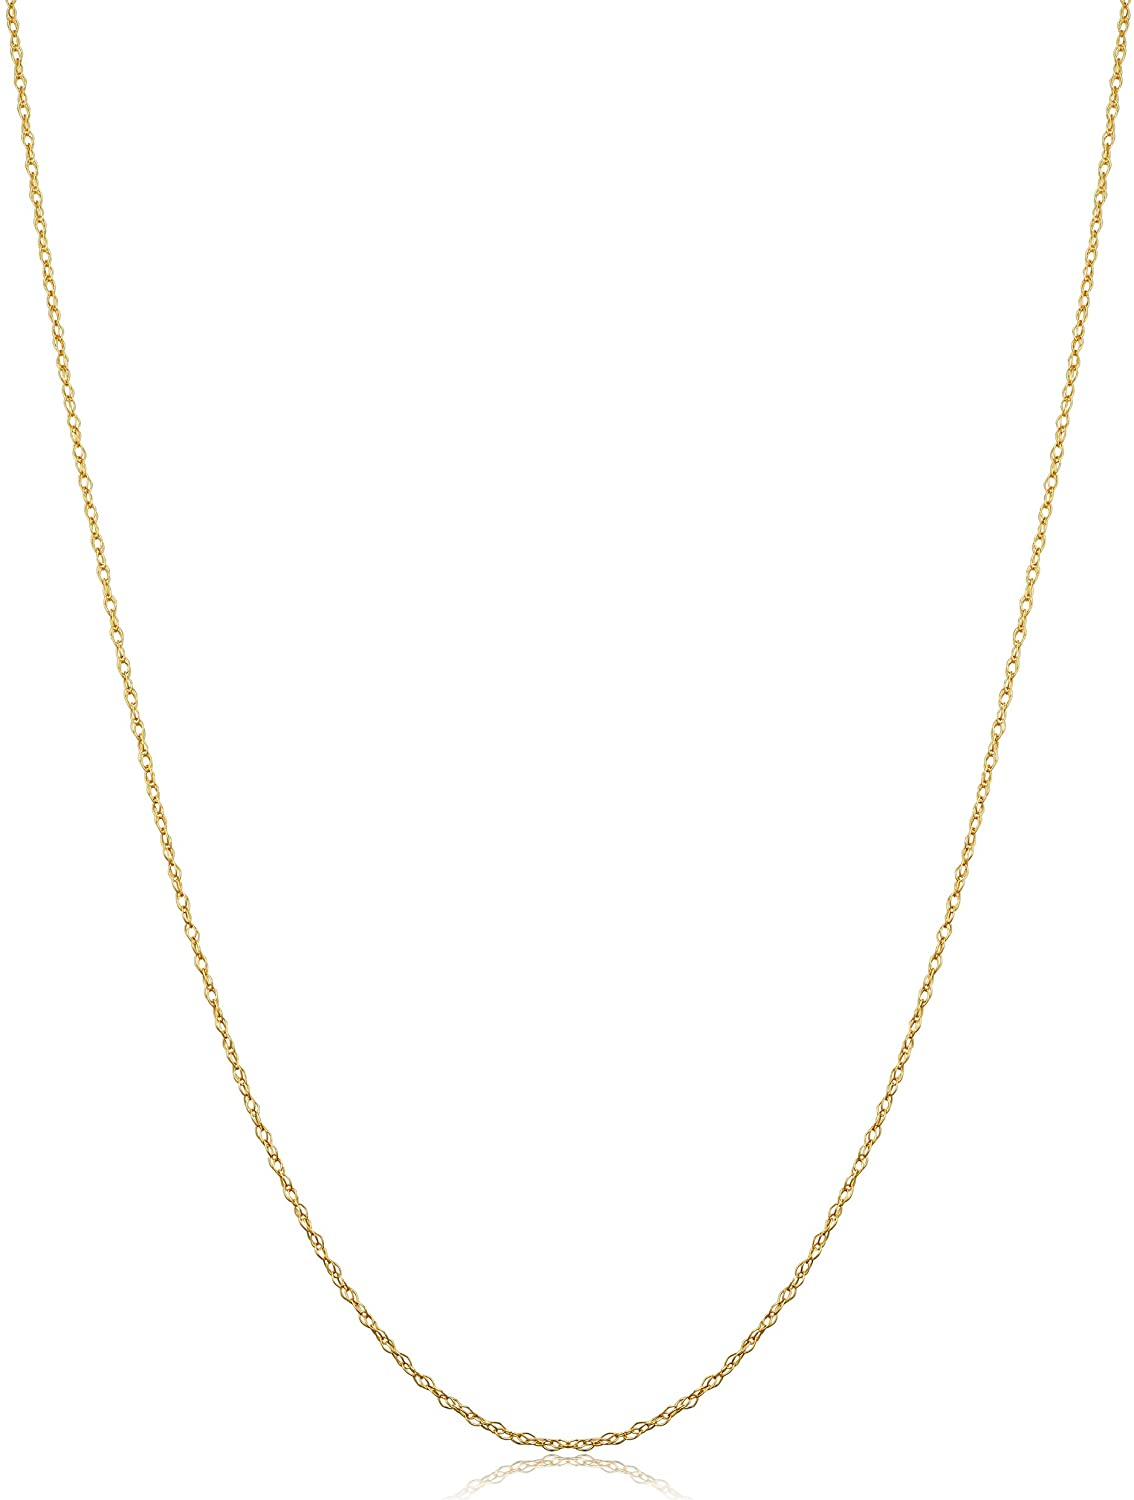 14k Yellow Gold Rope Chain Pendant Necklace for Women (0.7 mm, 0.9 mm, 1 mm, 1.3 mm, or 1.5 mm)